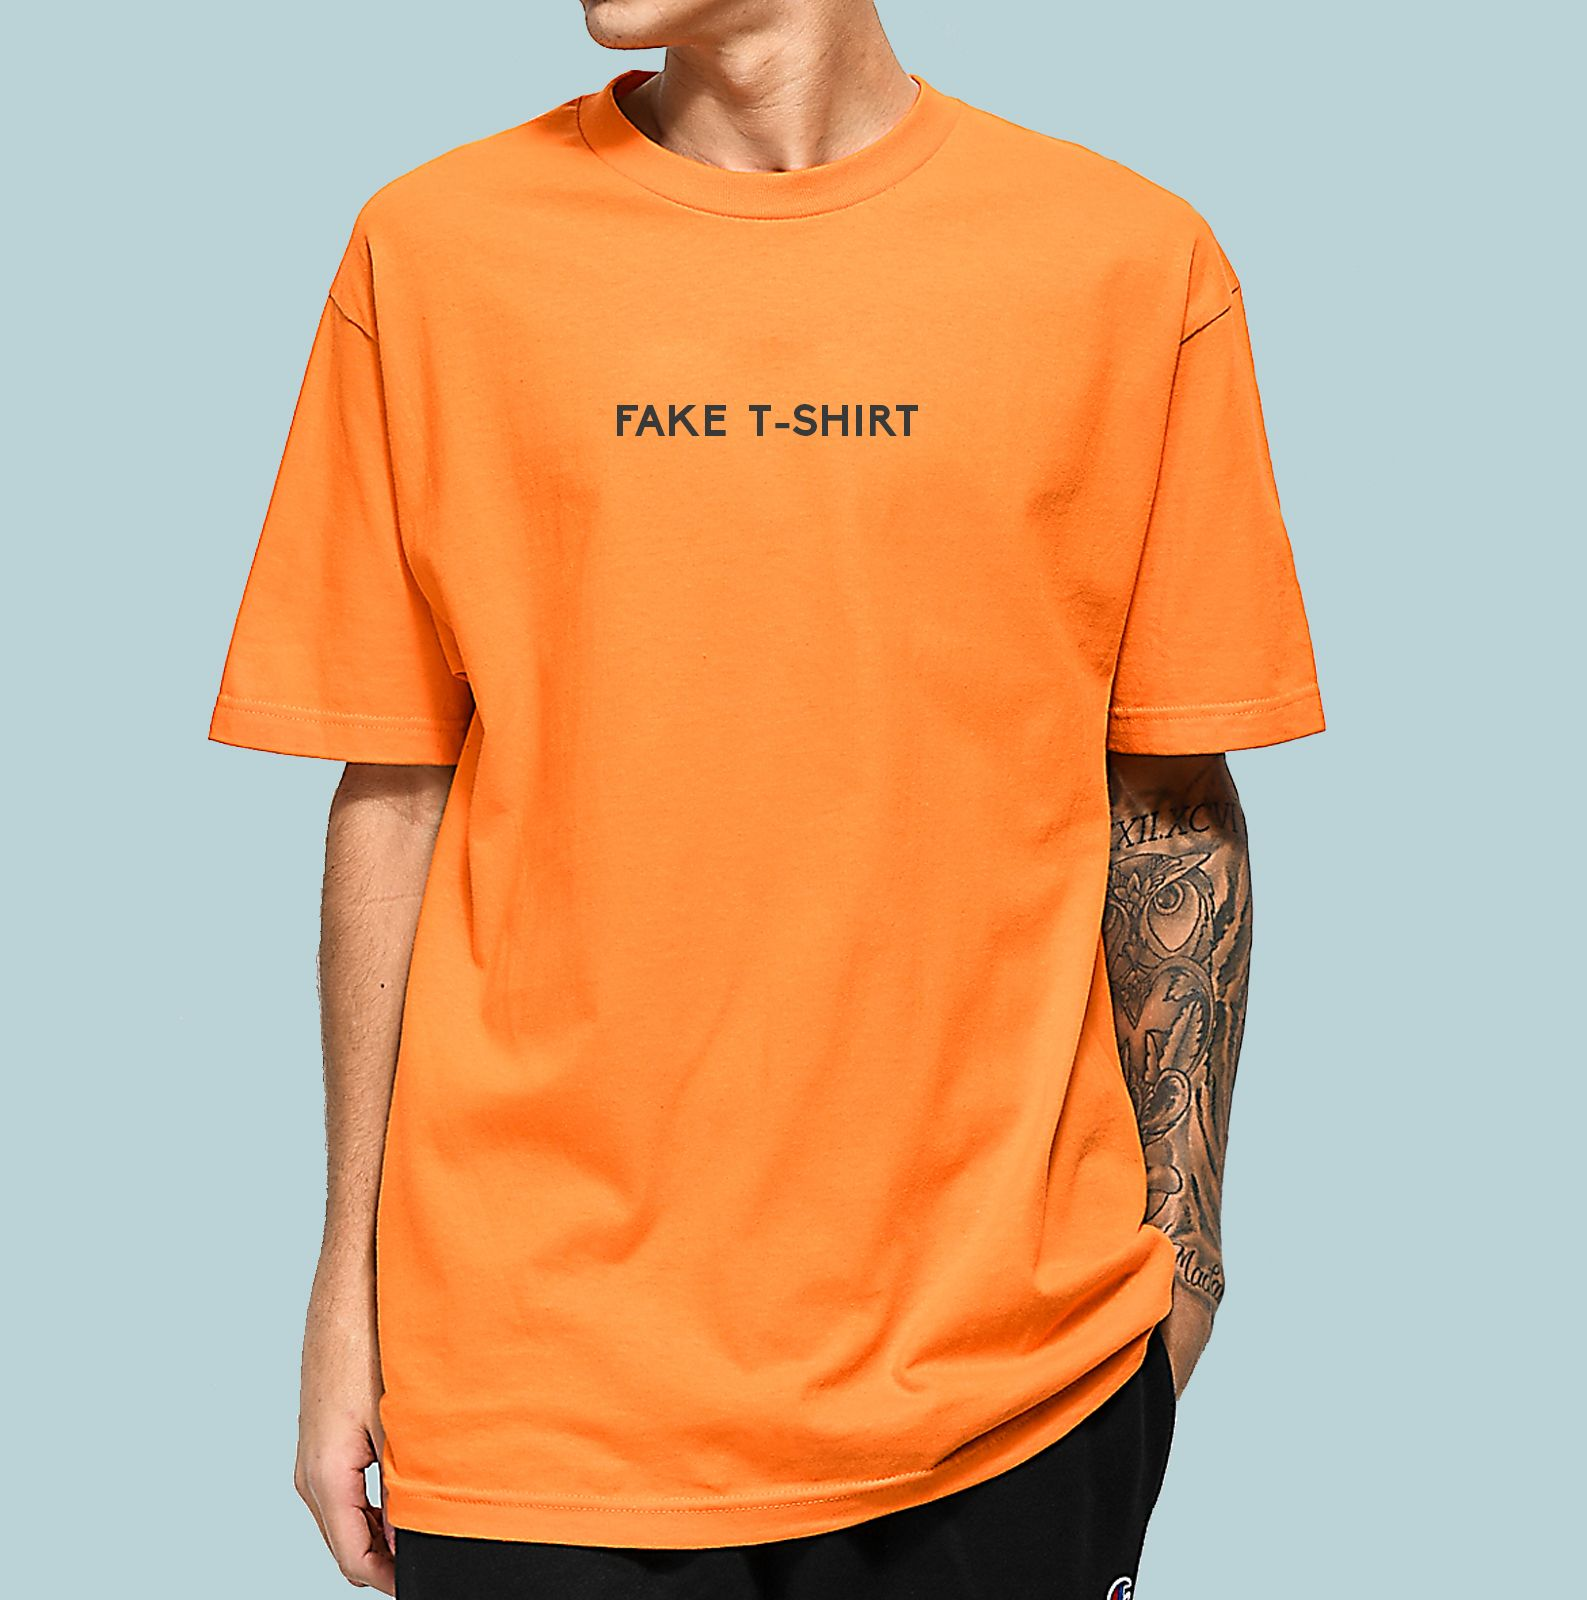 Camiseta Haze wear Fake T-SHIRT Laranja  street  streetwear  fashion   camiseta  moda 2c4cb0f8cd995